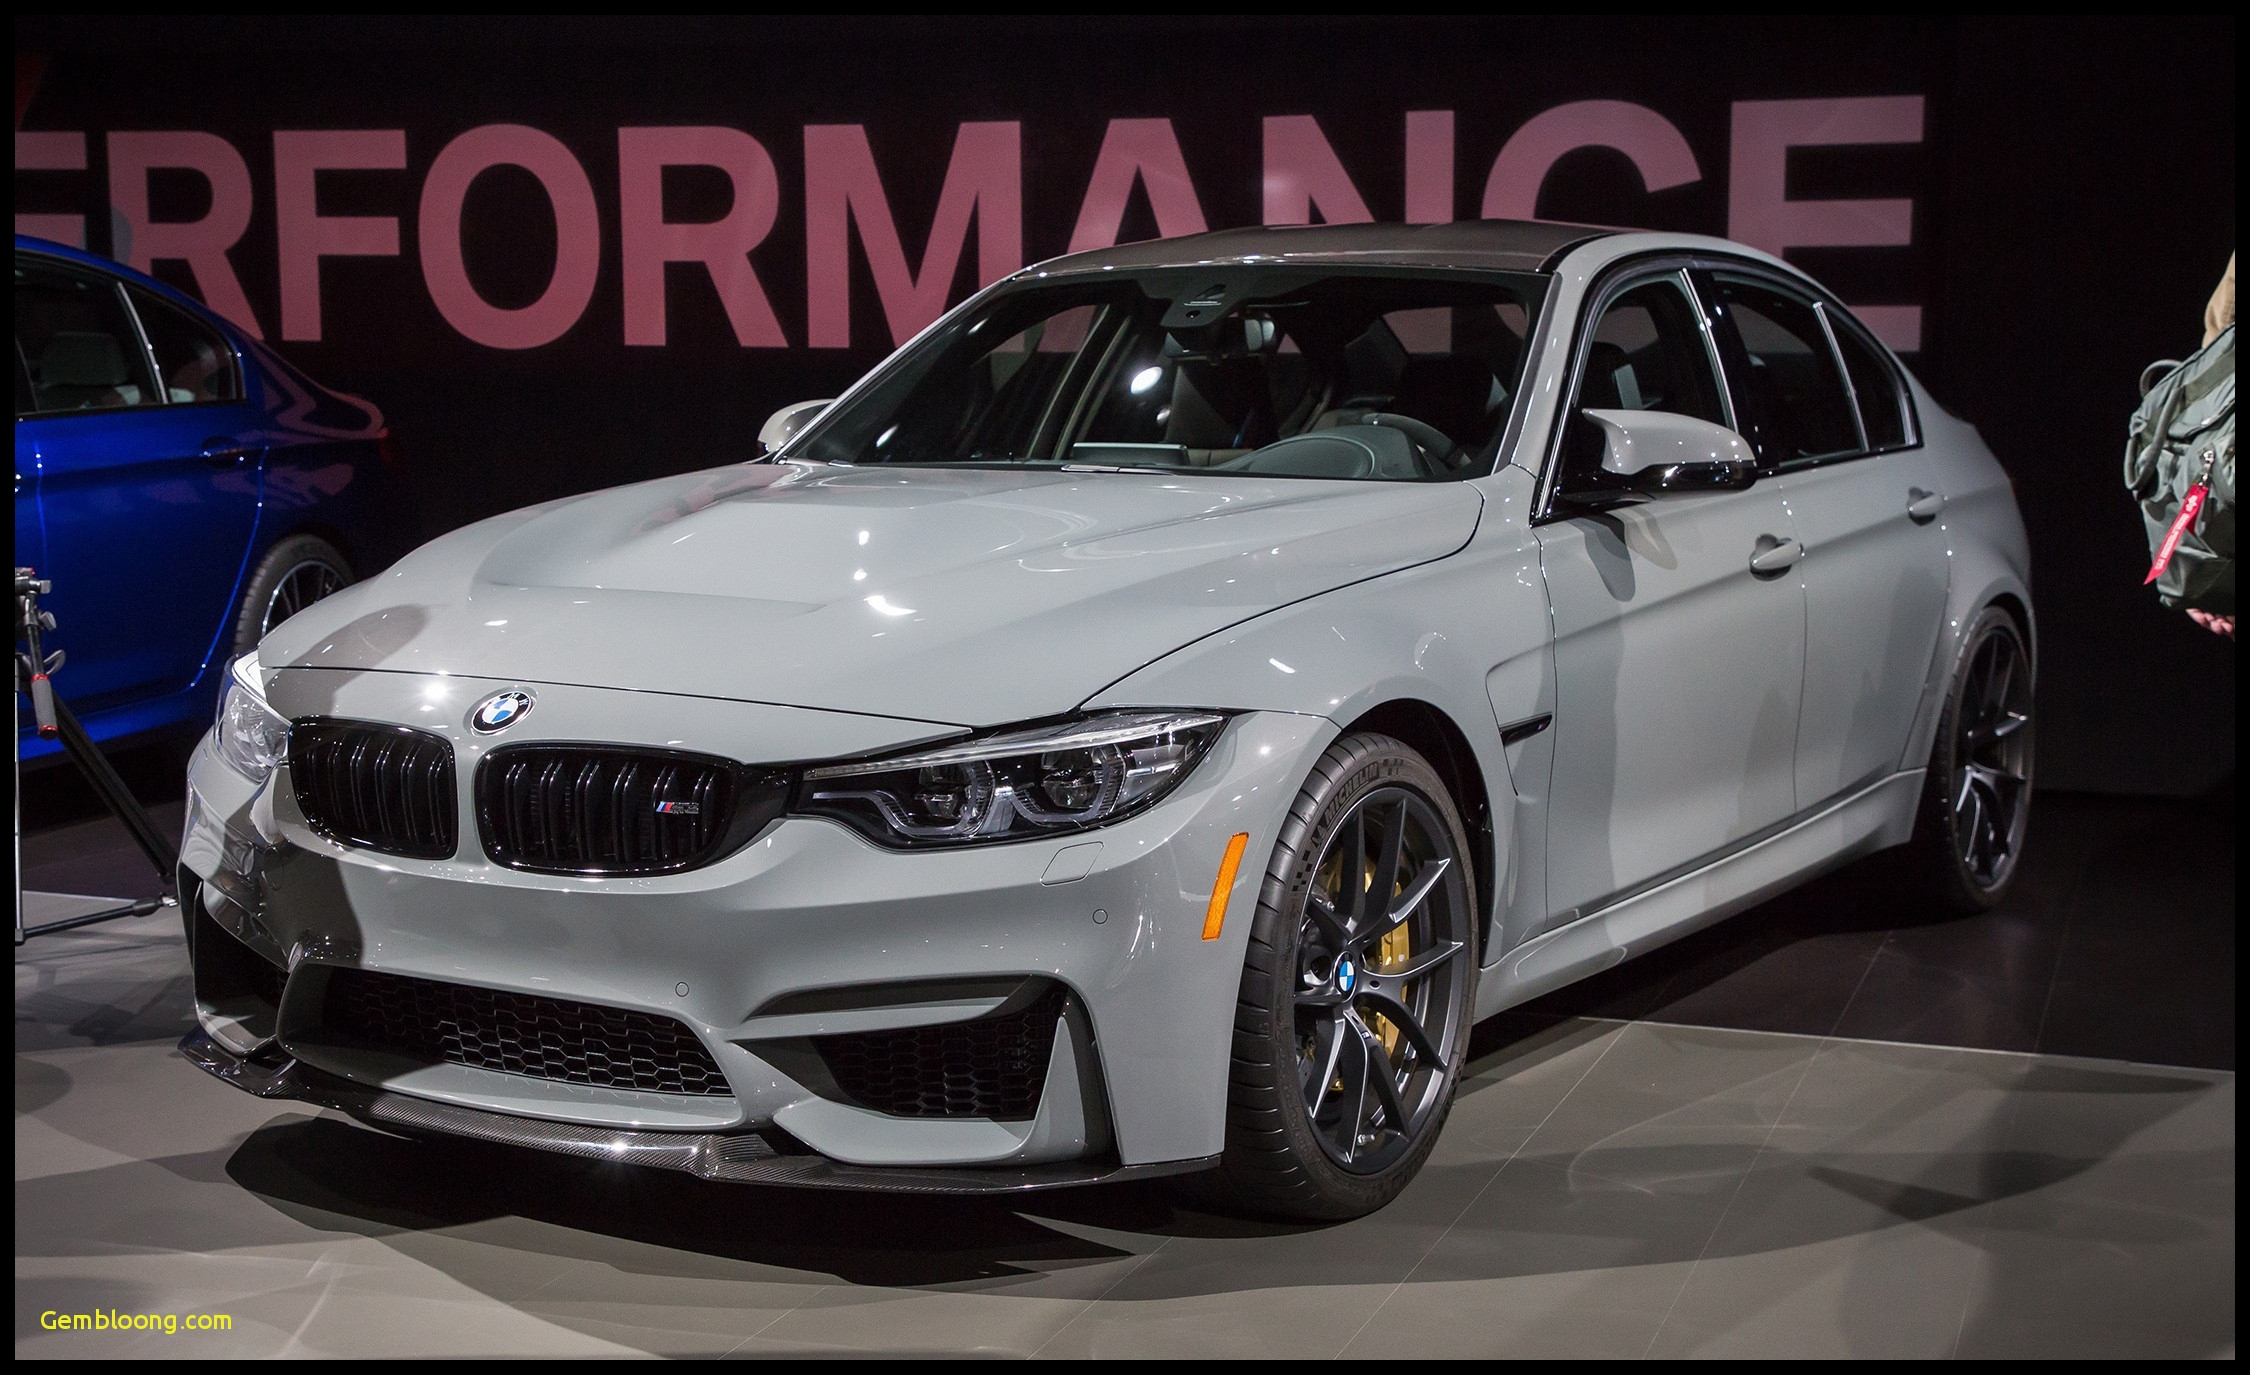 2019 Bmw M3 Awd Best Bmw 5 2018 Review 2018 Bmw M3 M3 2019 2019